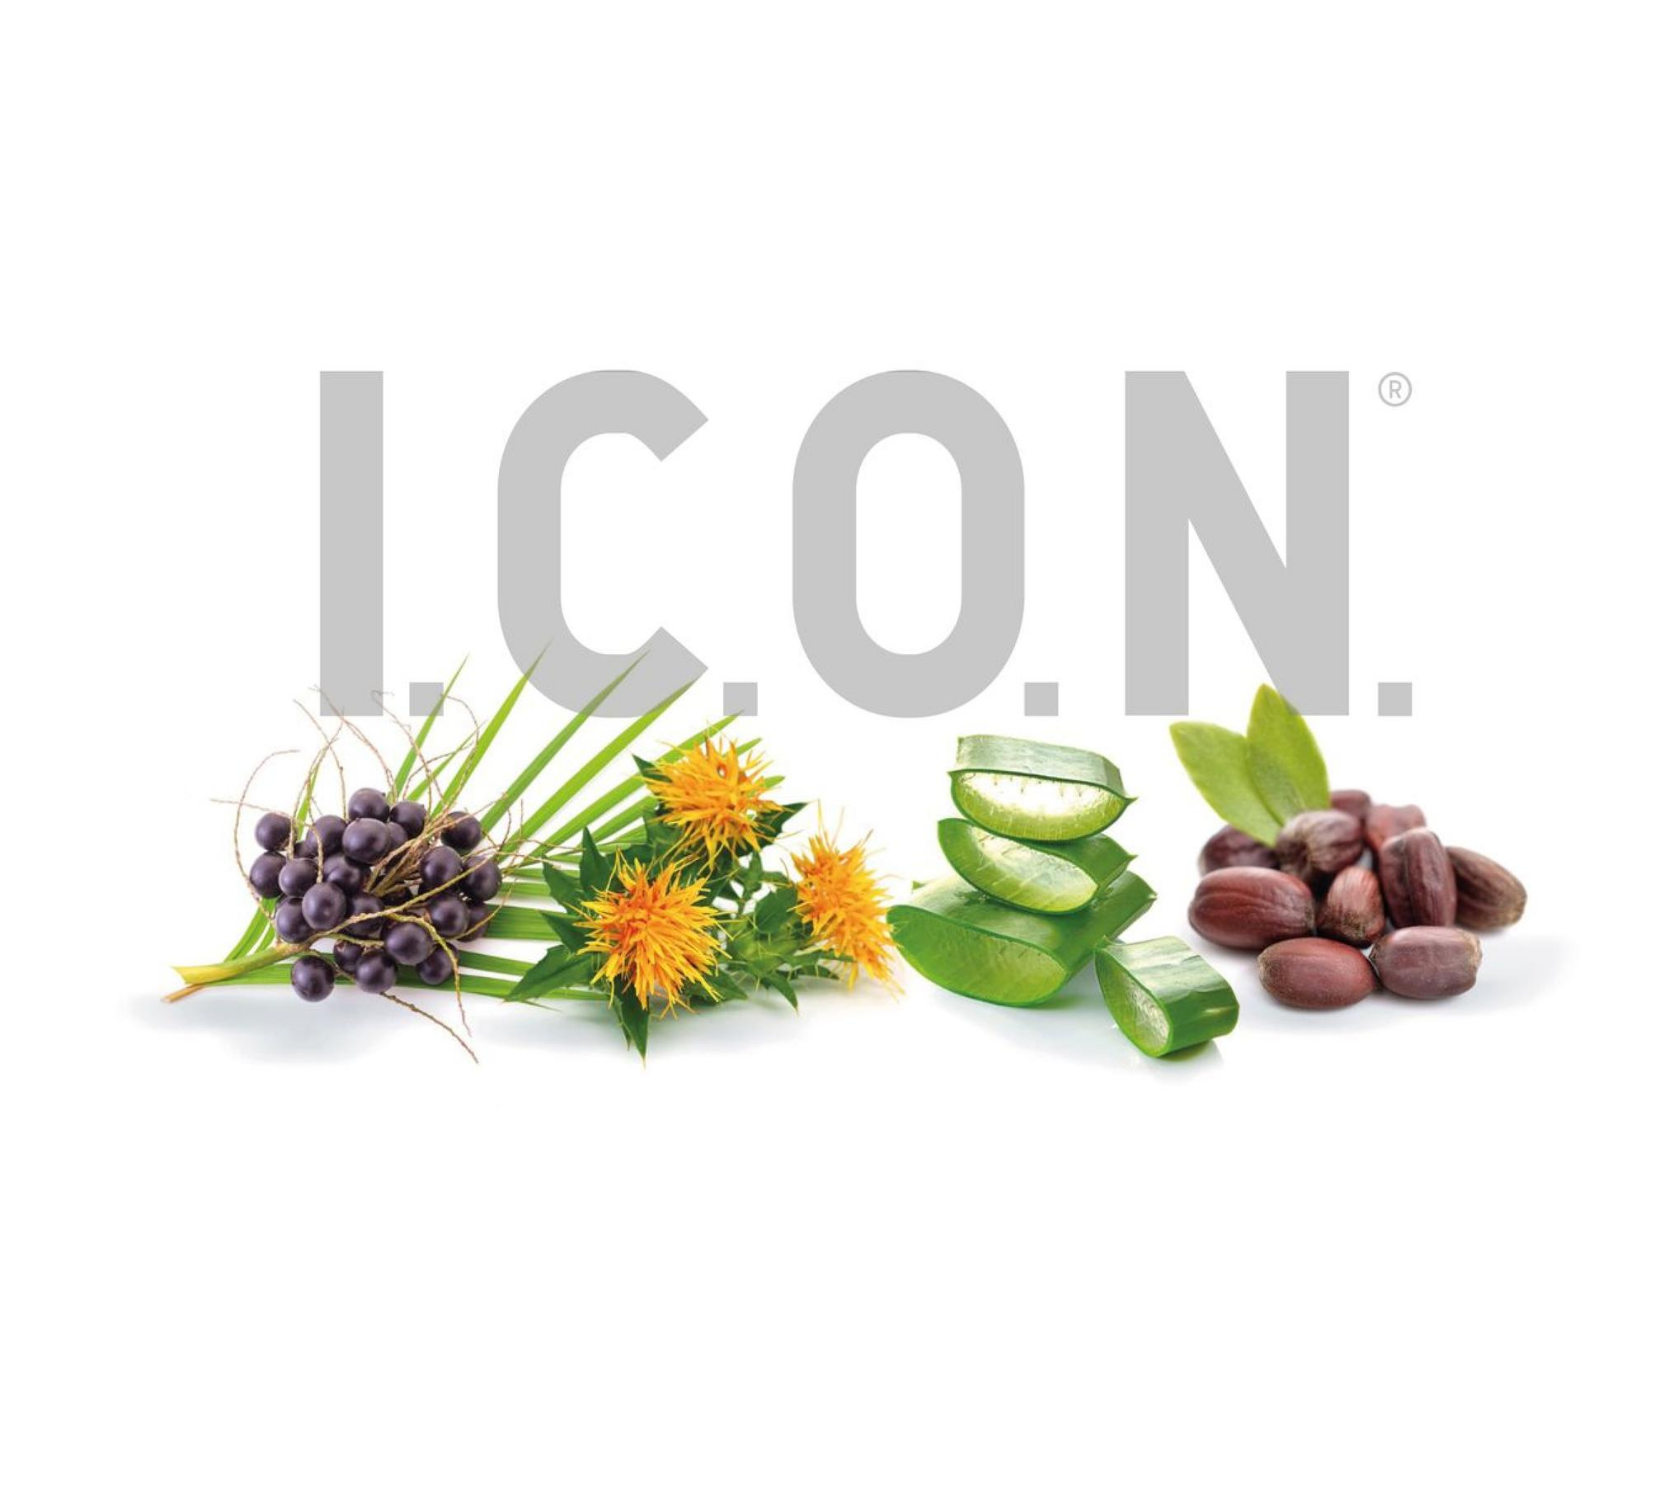 Morccan oil